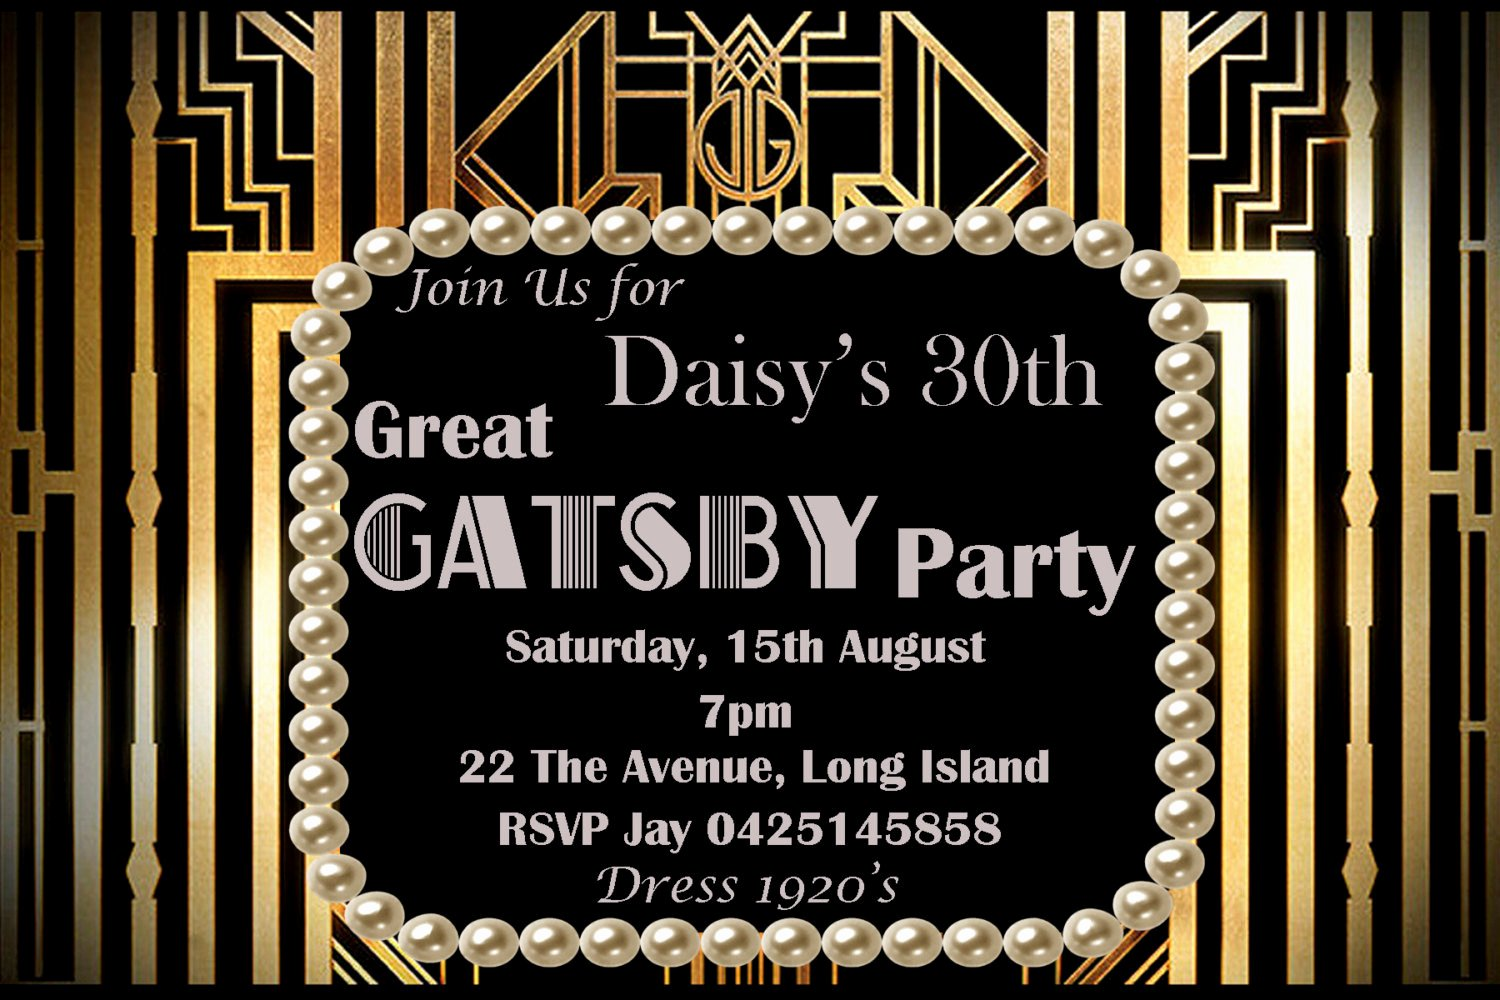 Great Gatsby Party Invitation Template Free Awesome the Great Gatsby Party Invitation Eyerunforpob